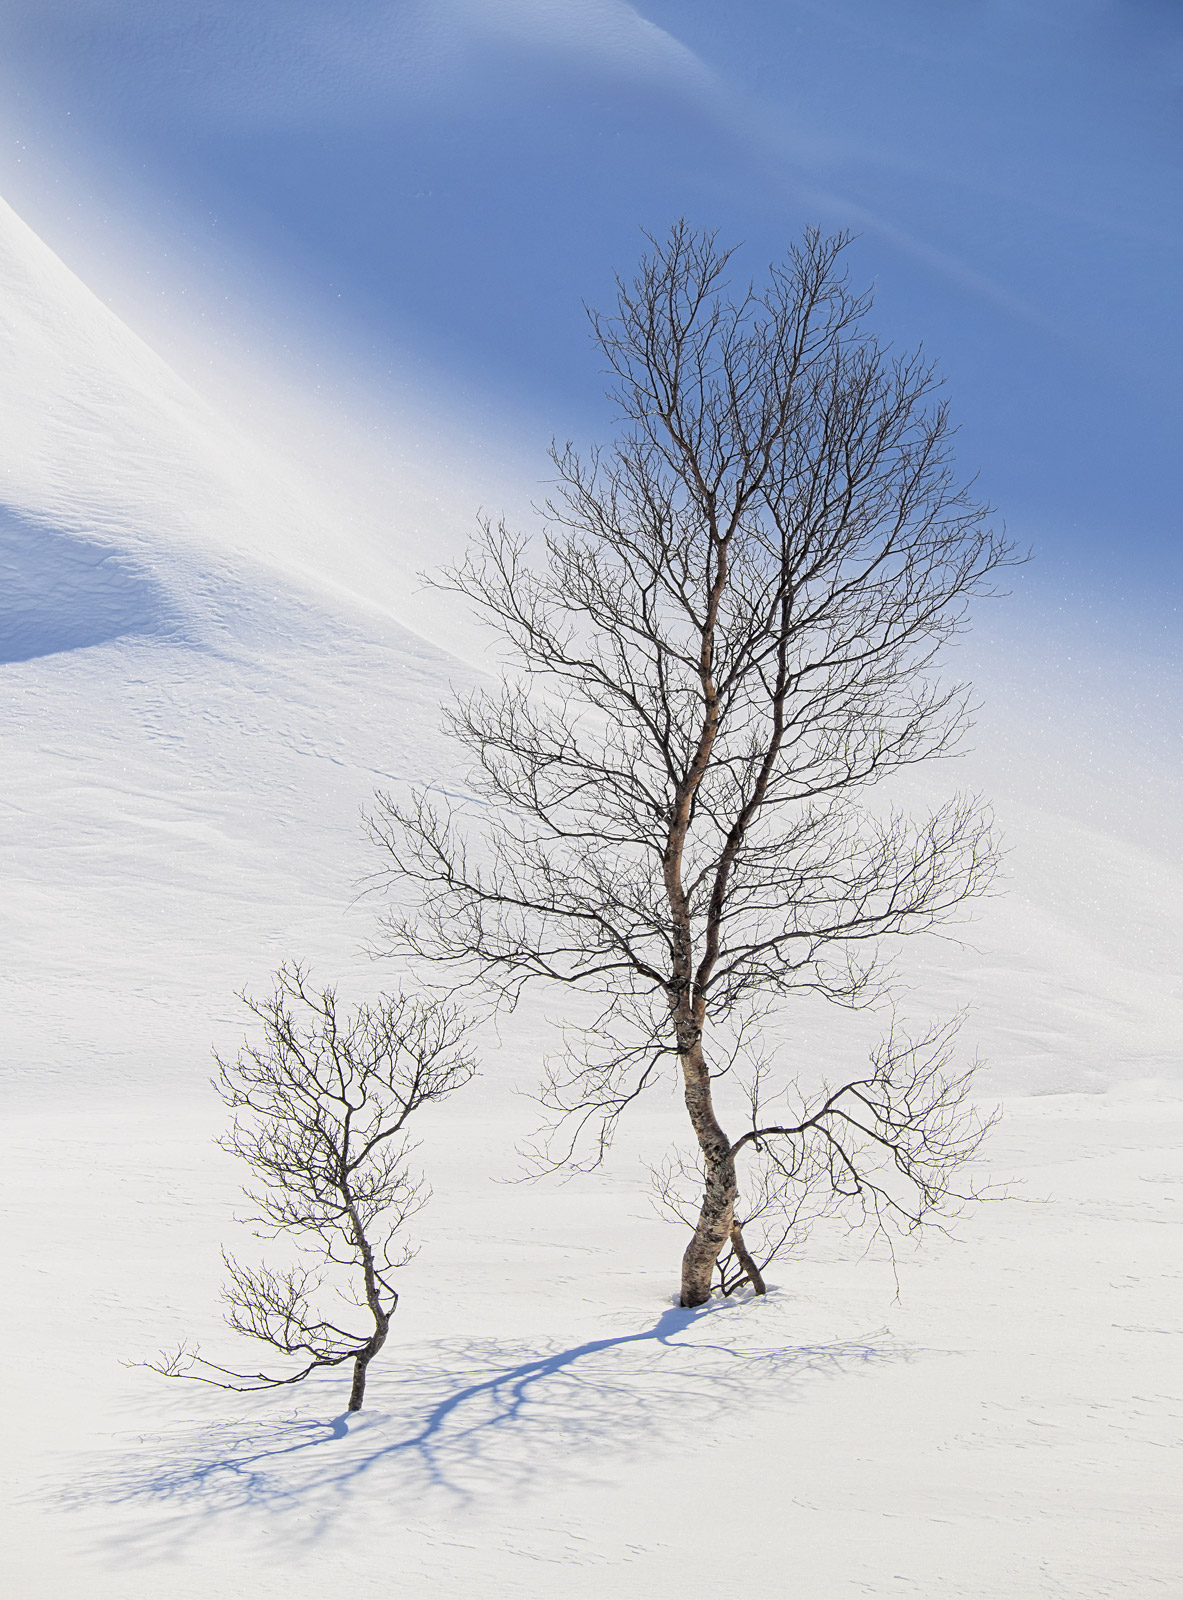 Curvaceous, Bothkollen, Anderdalen Nat Park, Norway, pleasure, impression, perfection, beautiful, trees, winter, unspoil, photo